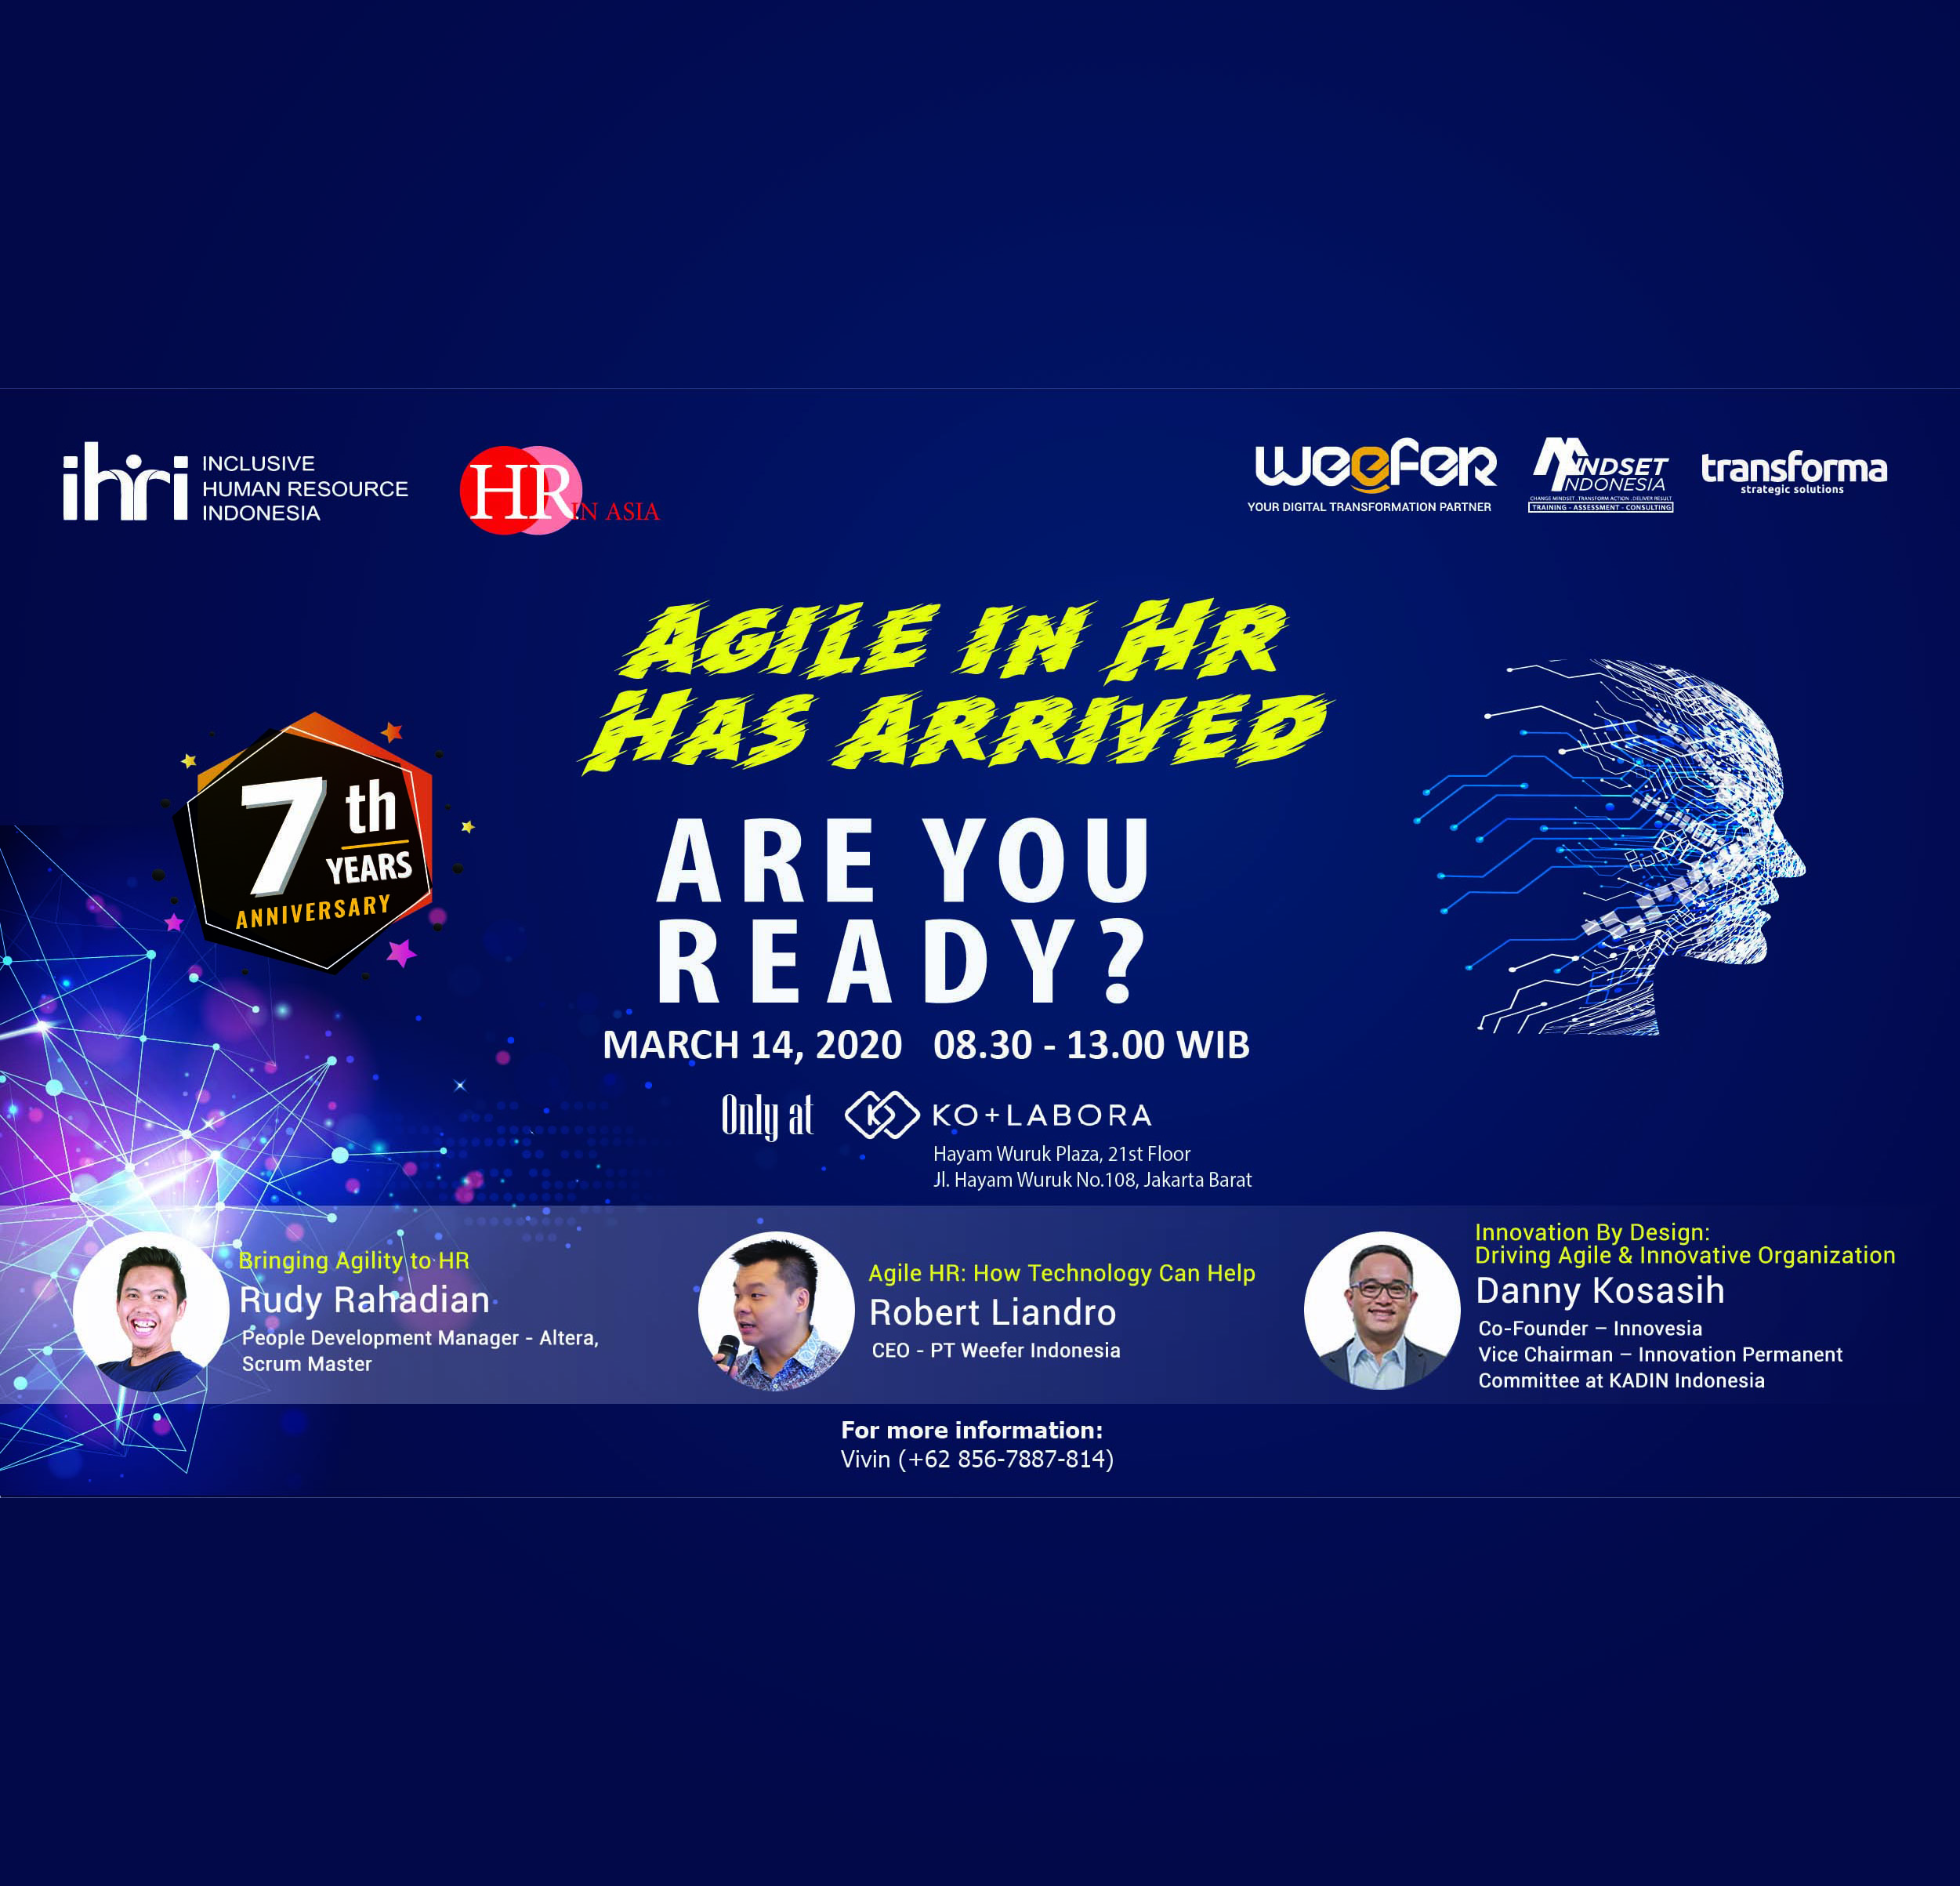 Agile in HR Has Arrived: Are You Ready?